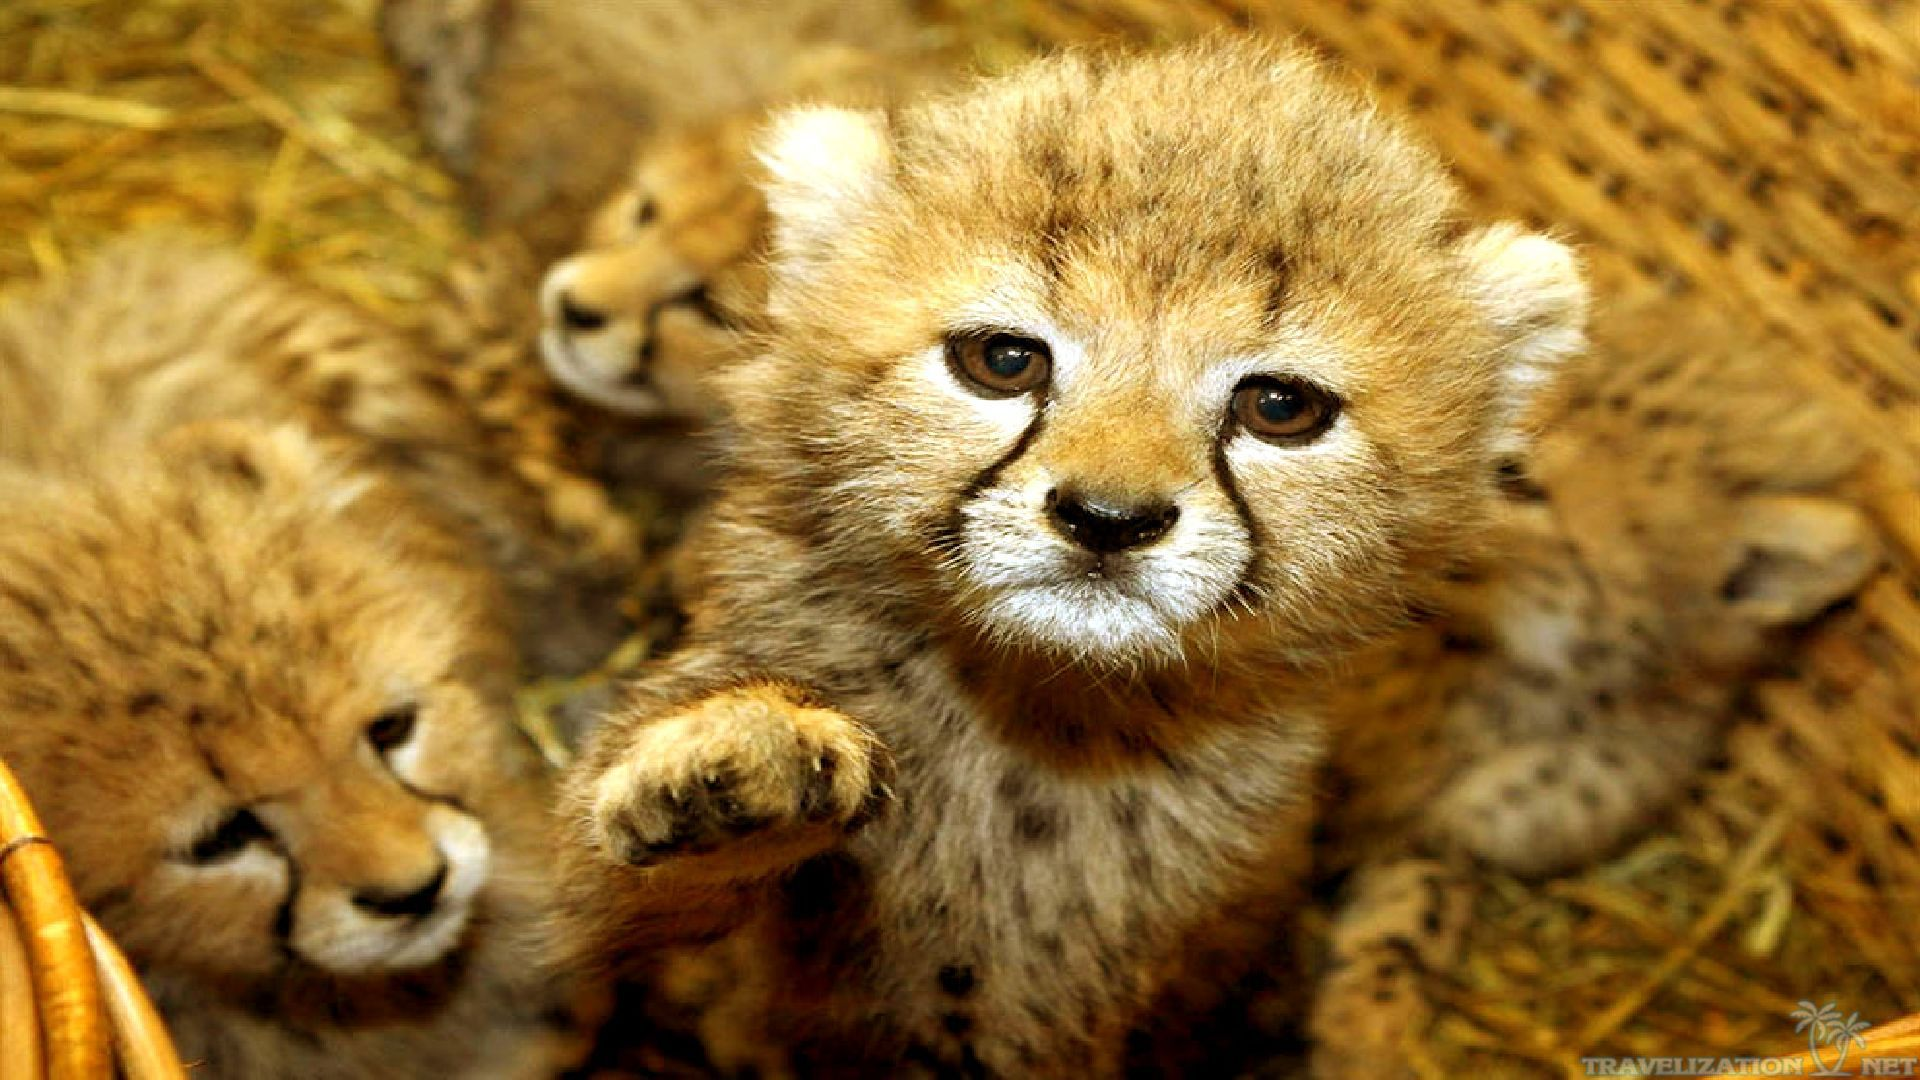 Pictures Of Cute Baby Animals   Desktop Backgrounds 1920x1080